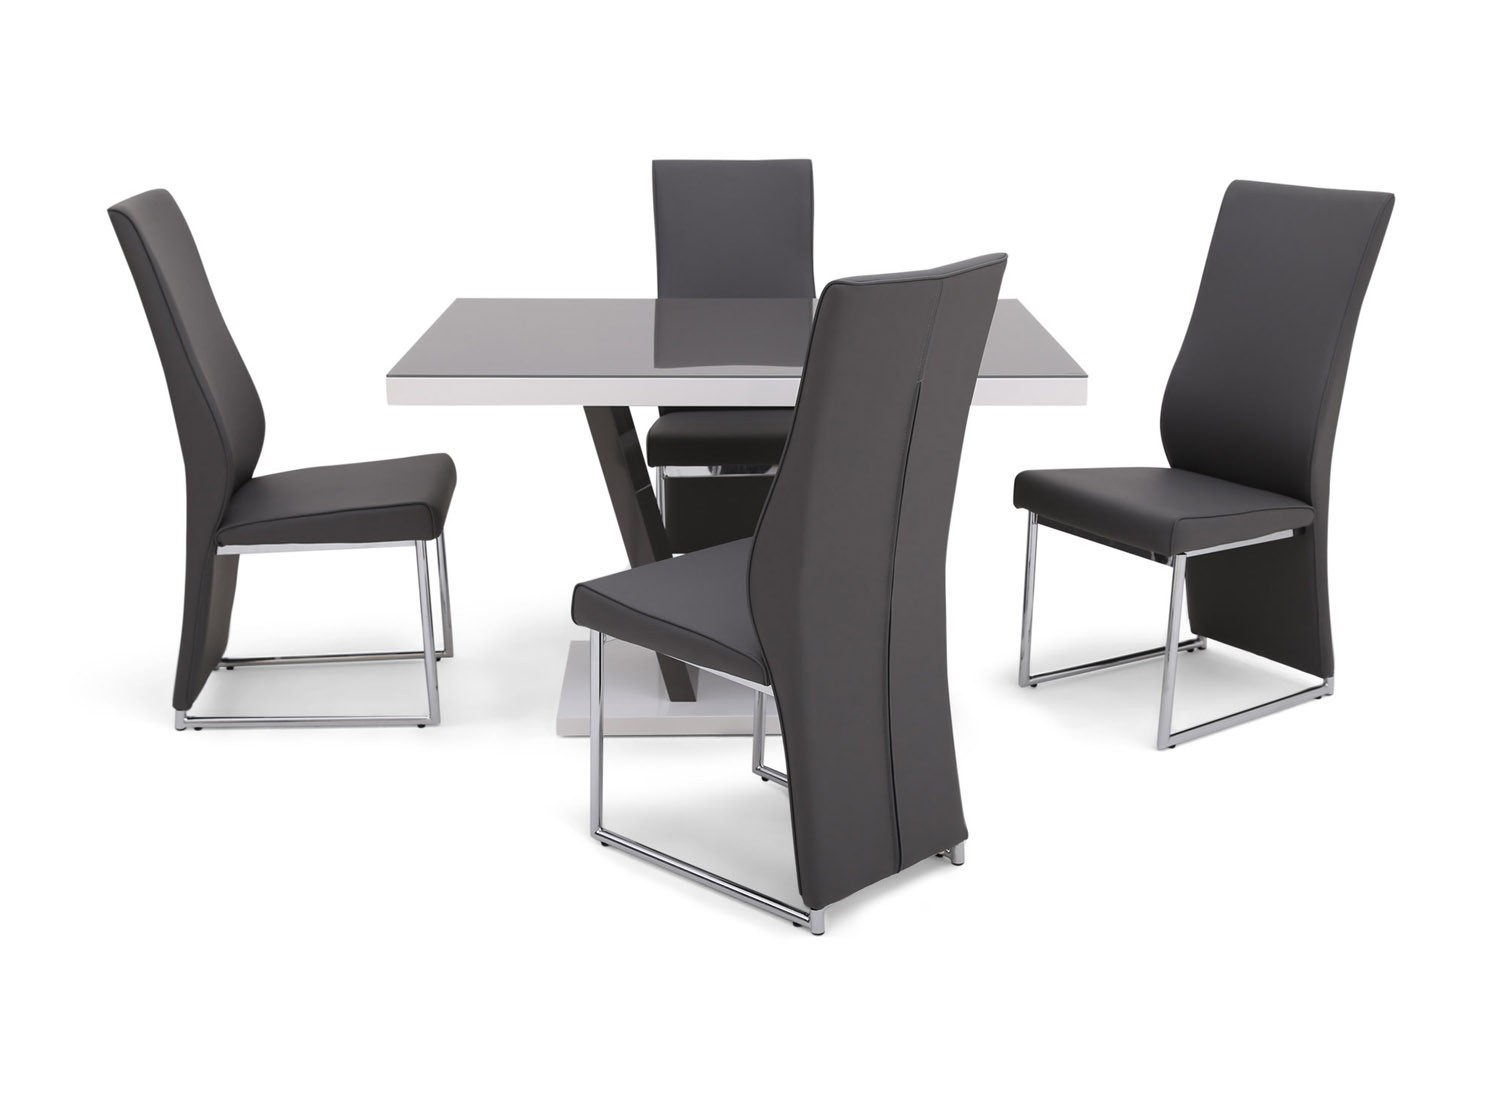 https://www.firstfurniture.co.uk/pub/media/catalog/product/f/a/fairmont_valentino_grey_high_gloss_dining_table_4_remo_black_chairs_3.jpg